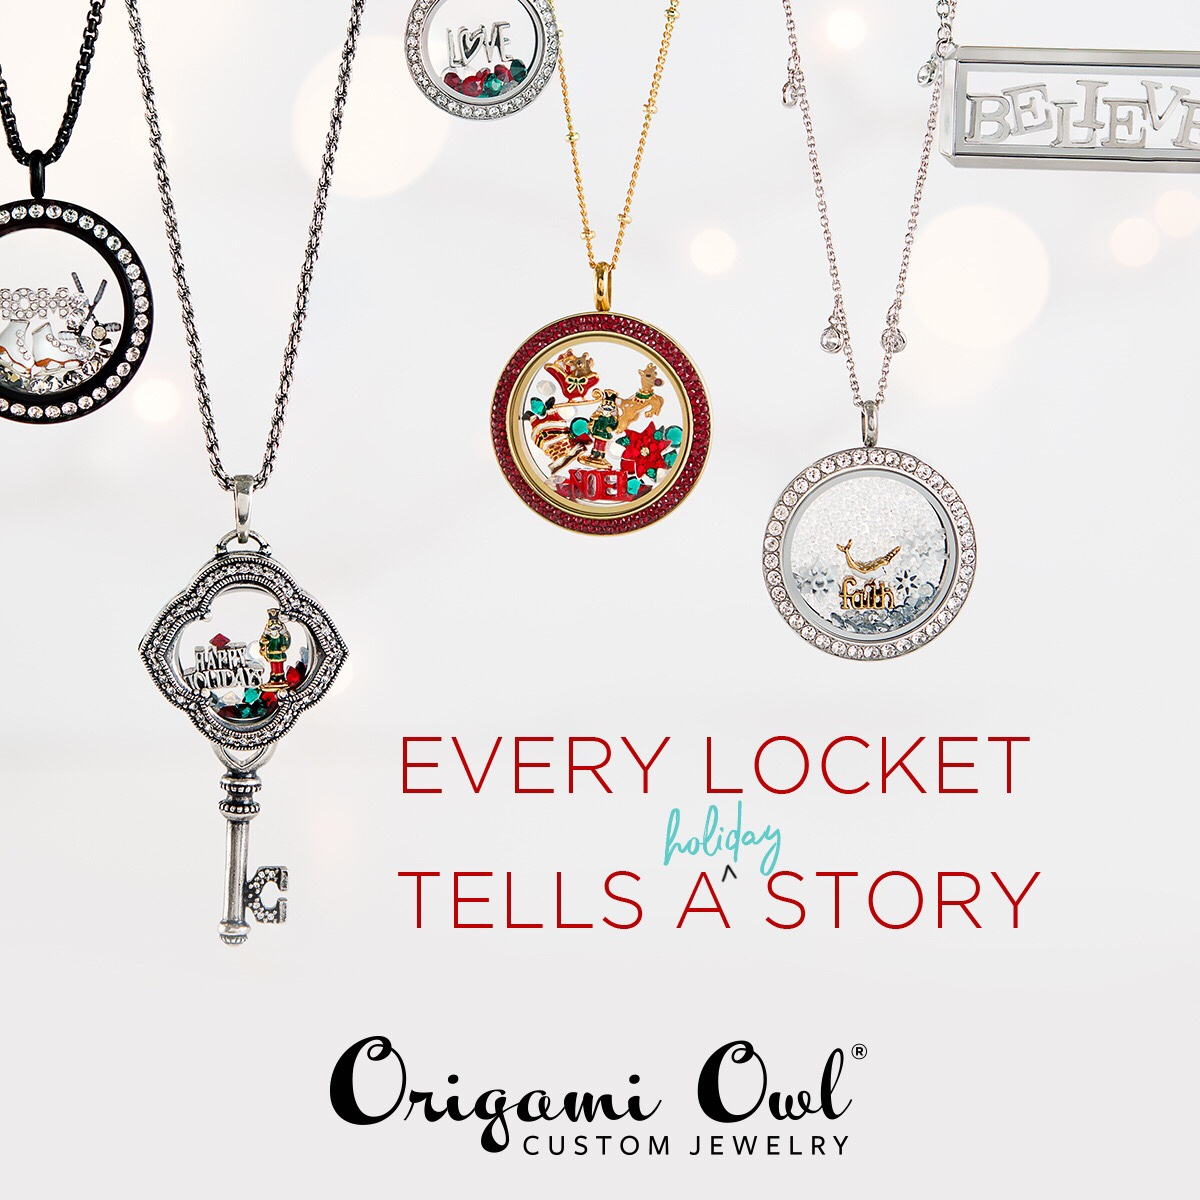 Origami Owl Over The Heart Chain Holiday Gift Guide Clara Martinez